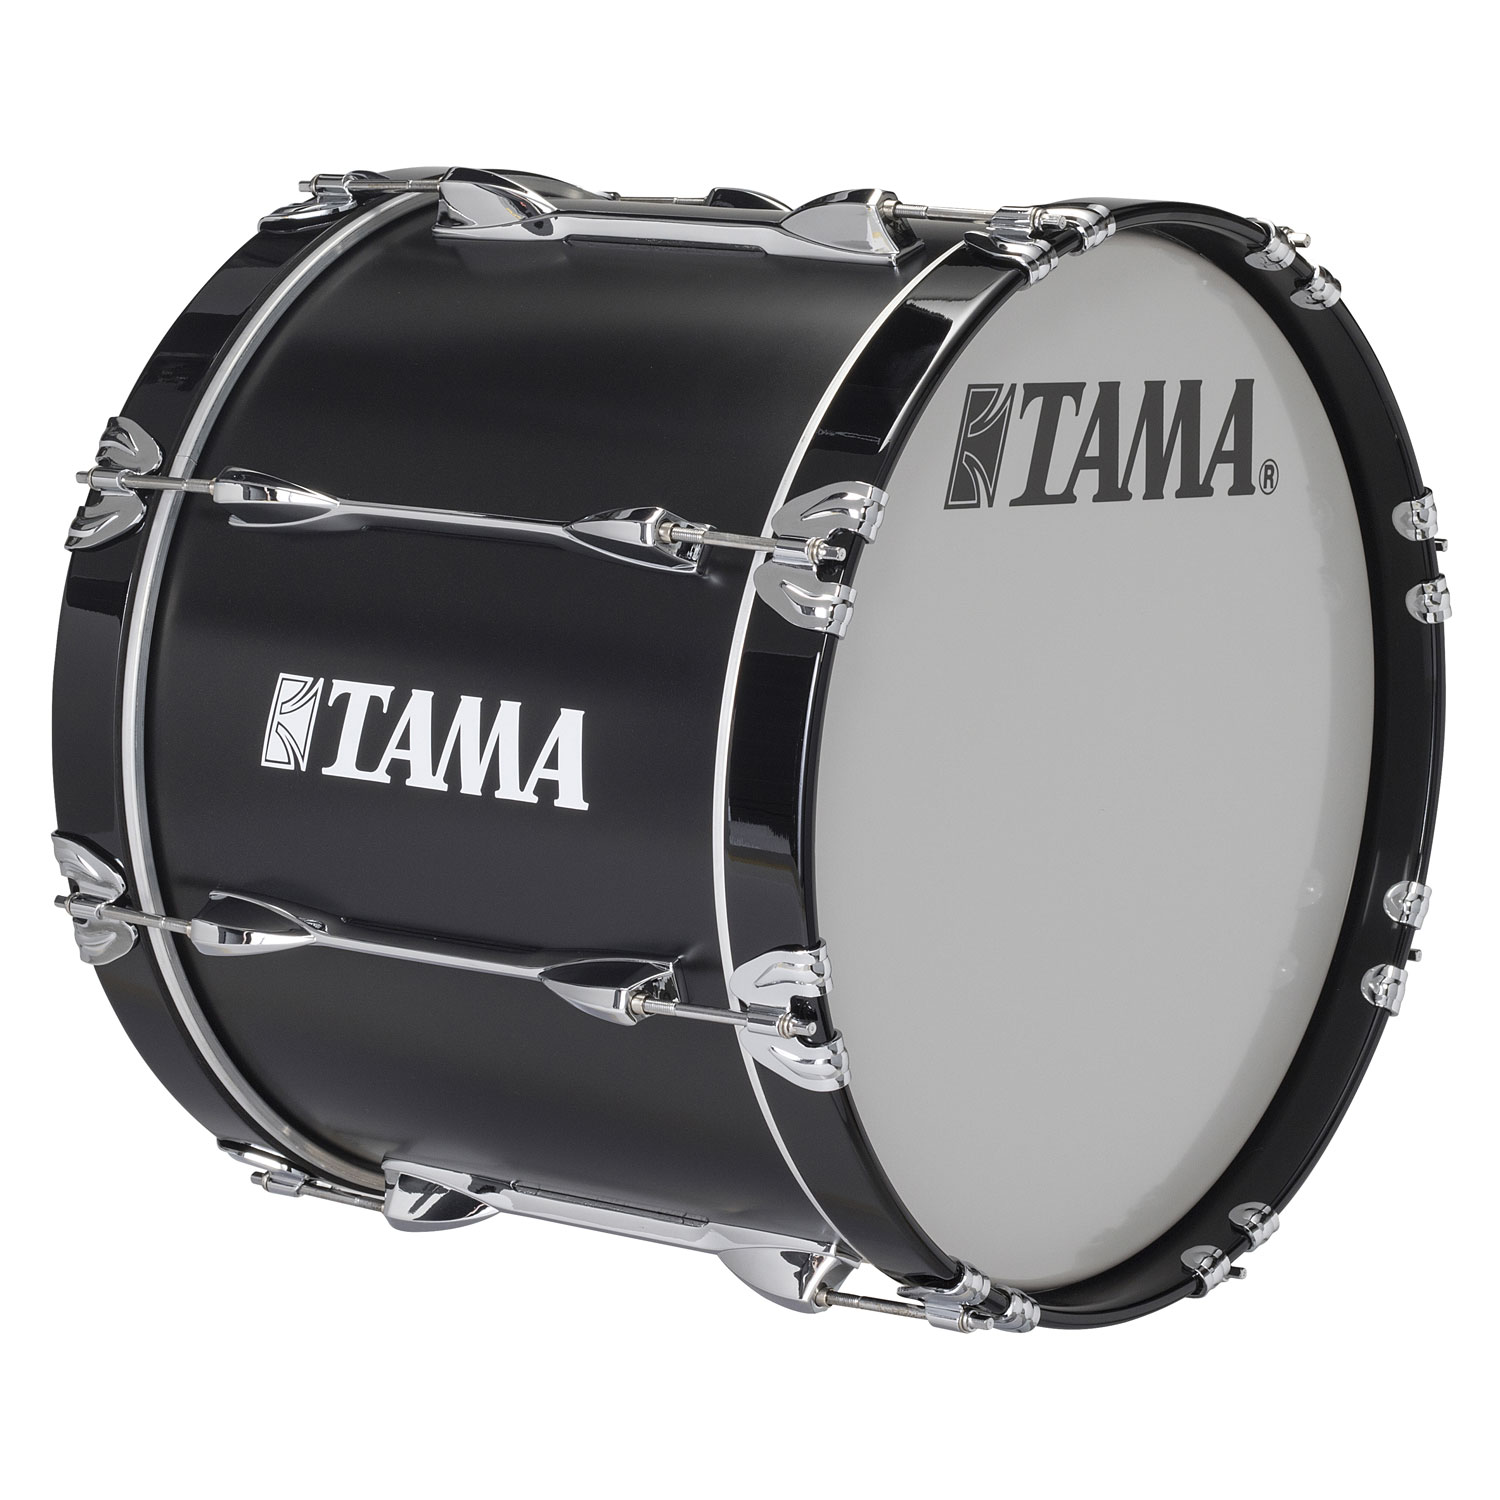 "Tama 18"" StarLight Marching Bass Drum in Satin Black Lacquer"